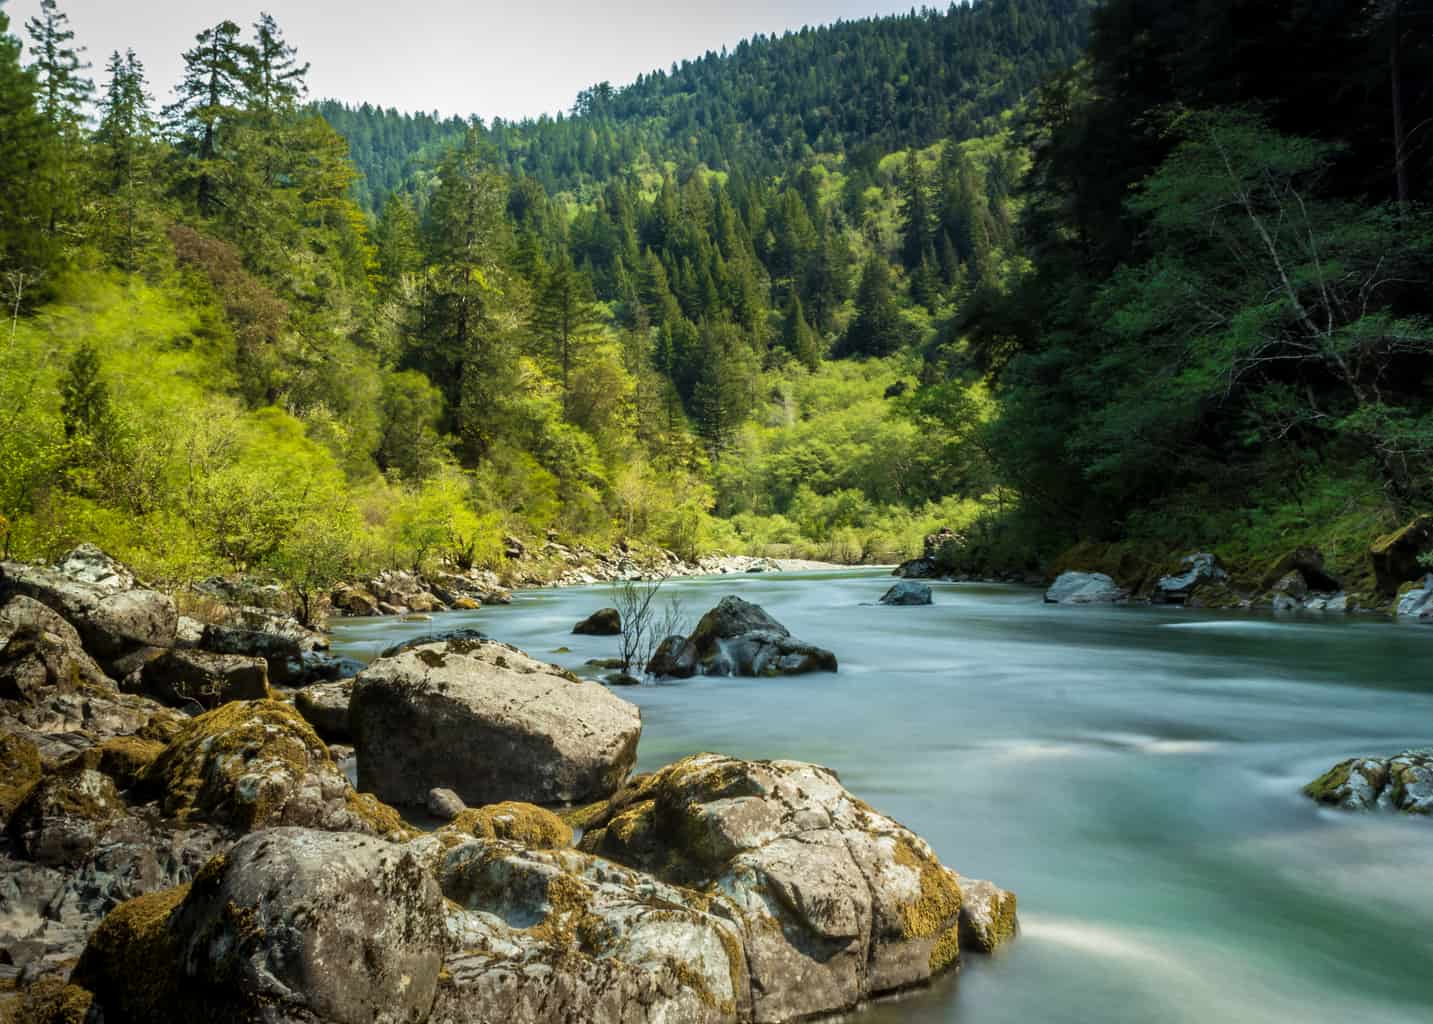 The Smith River in Northern California.